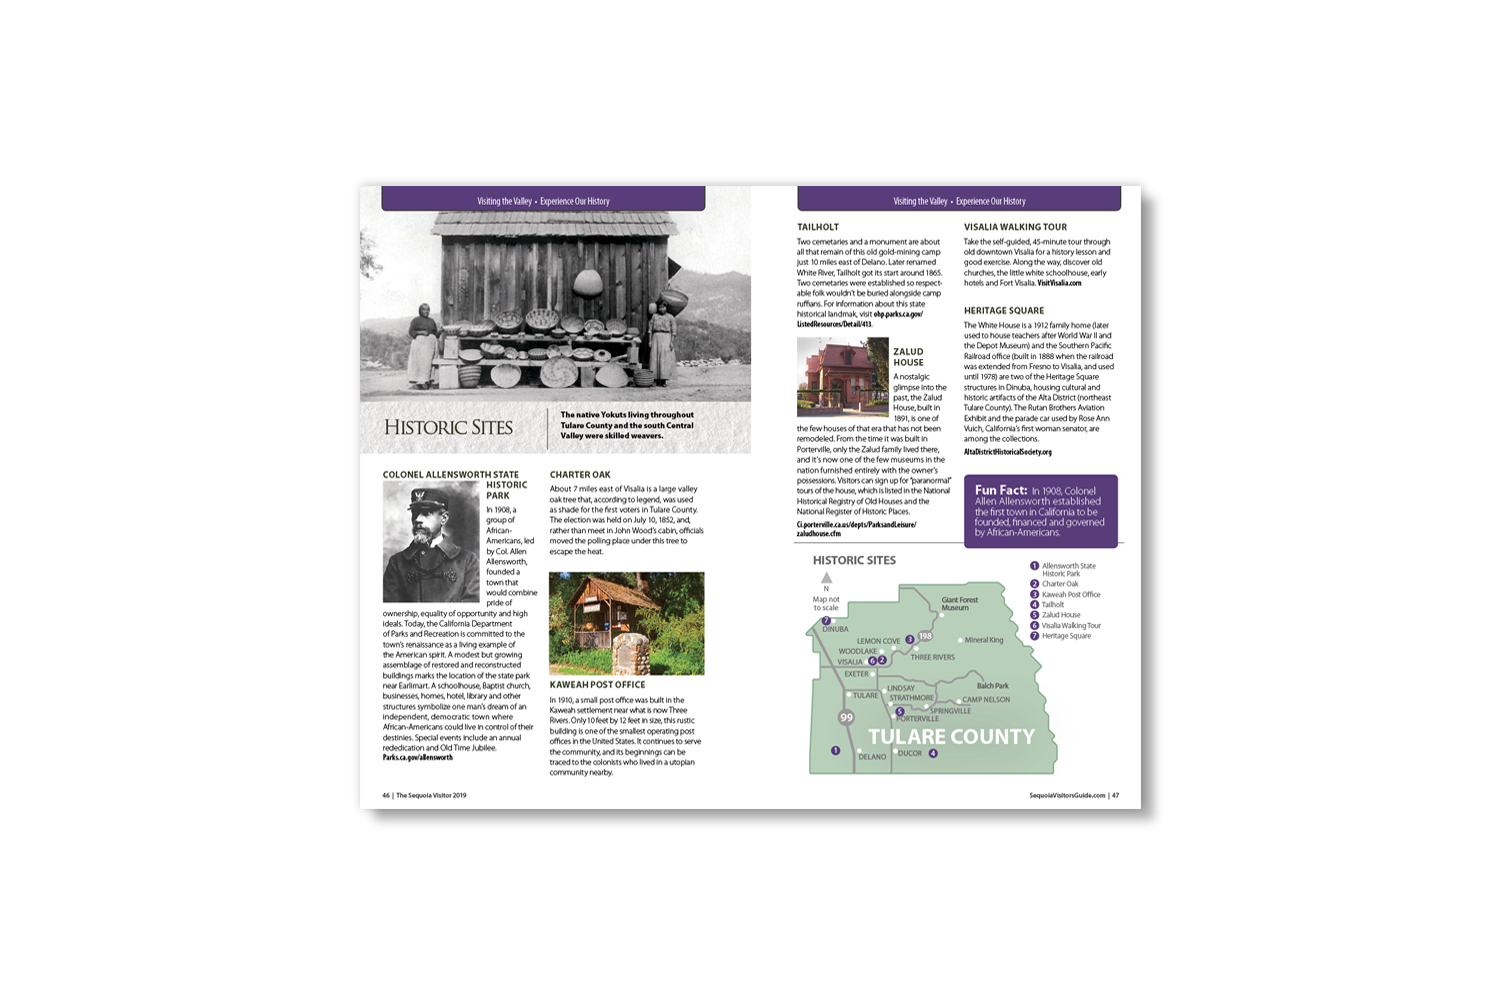 DMI Agency, design and production of Sequoia Visitors Guide_historic sites